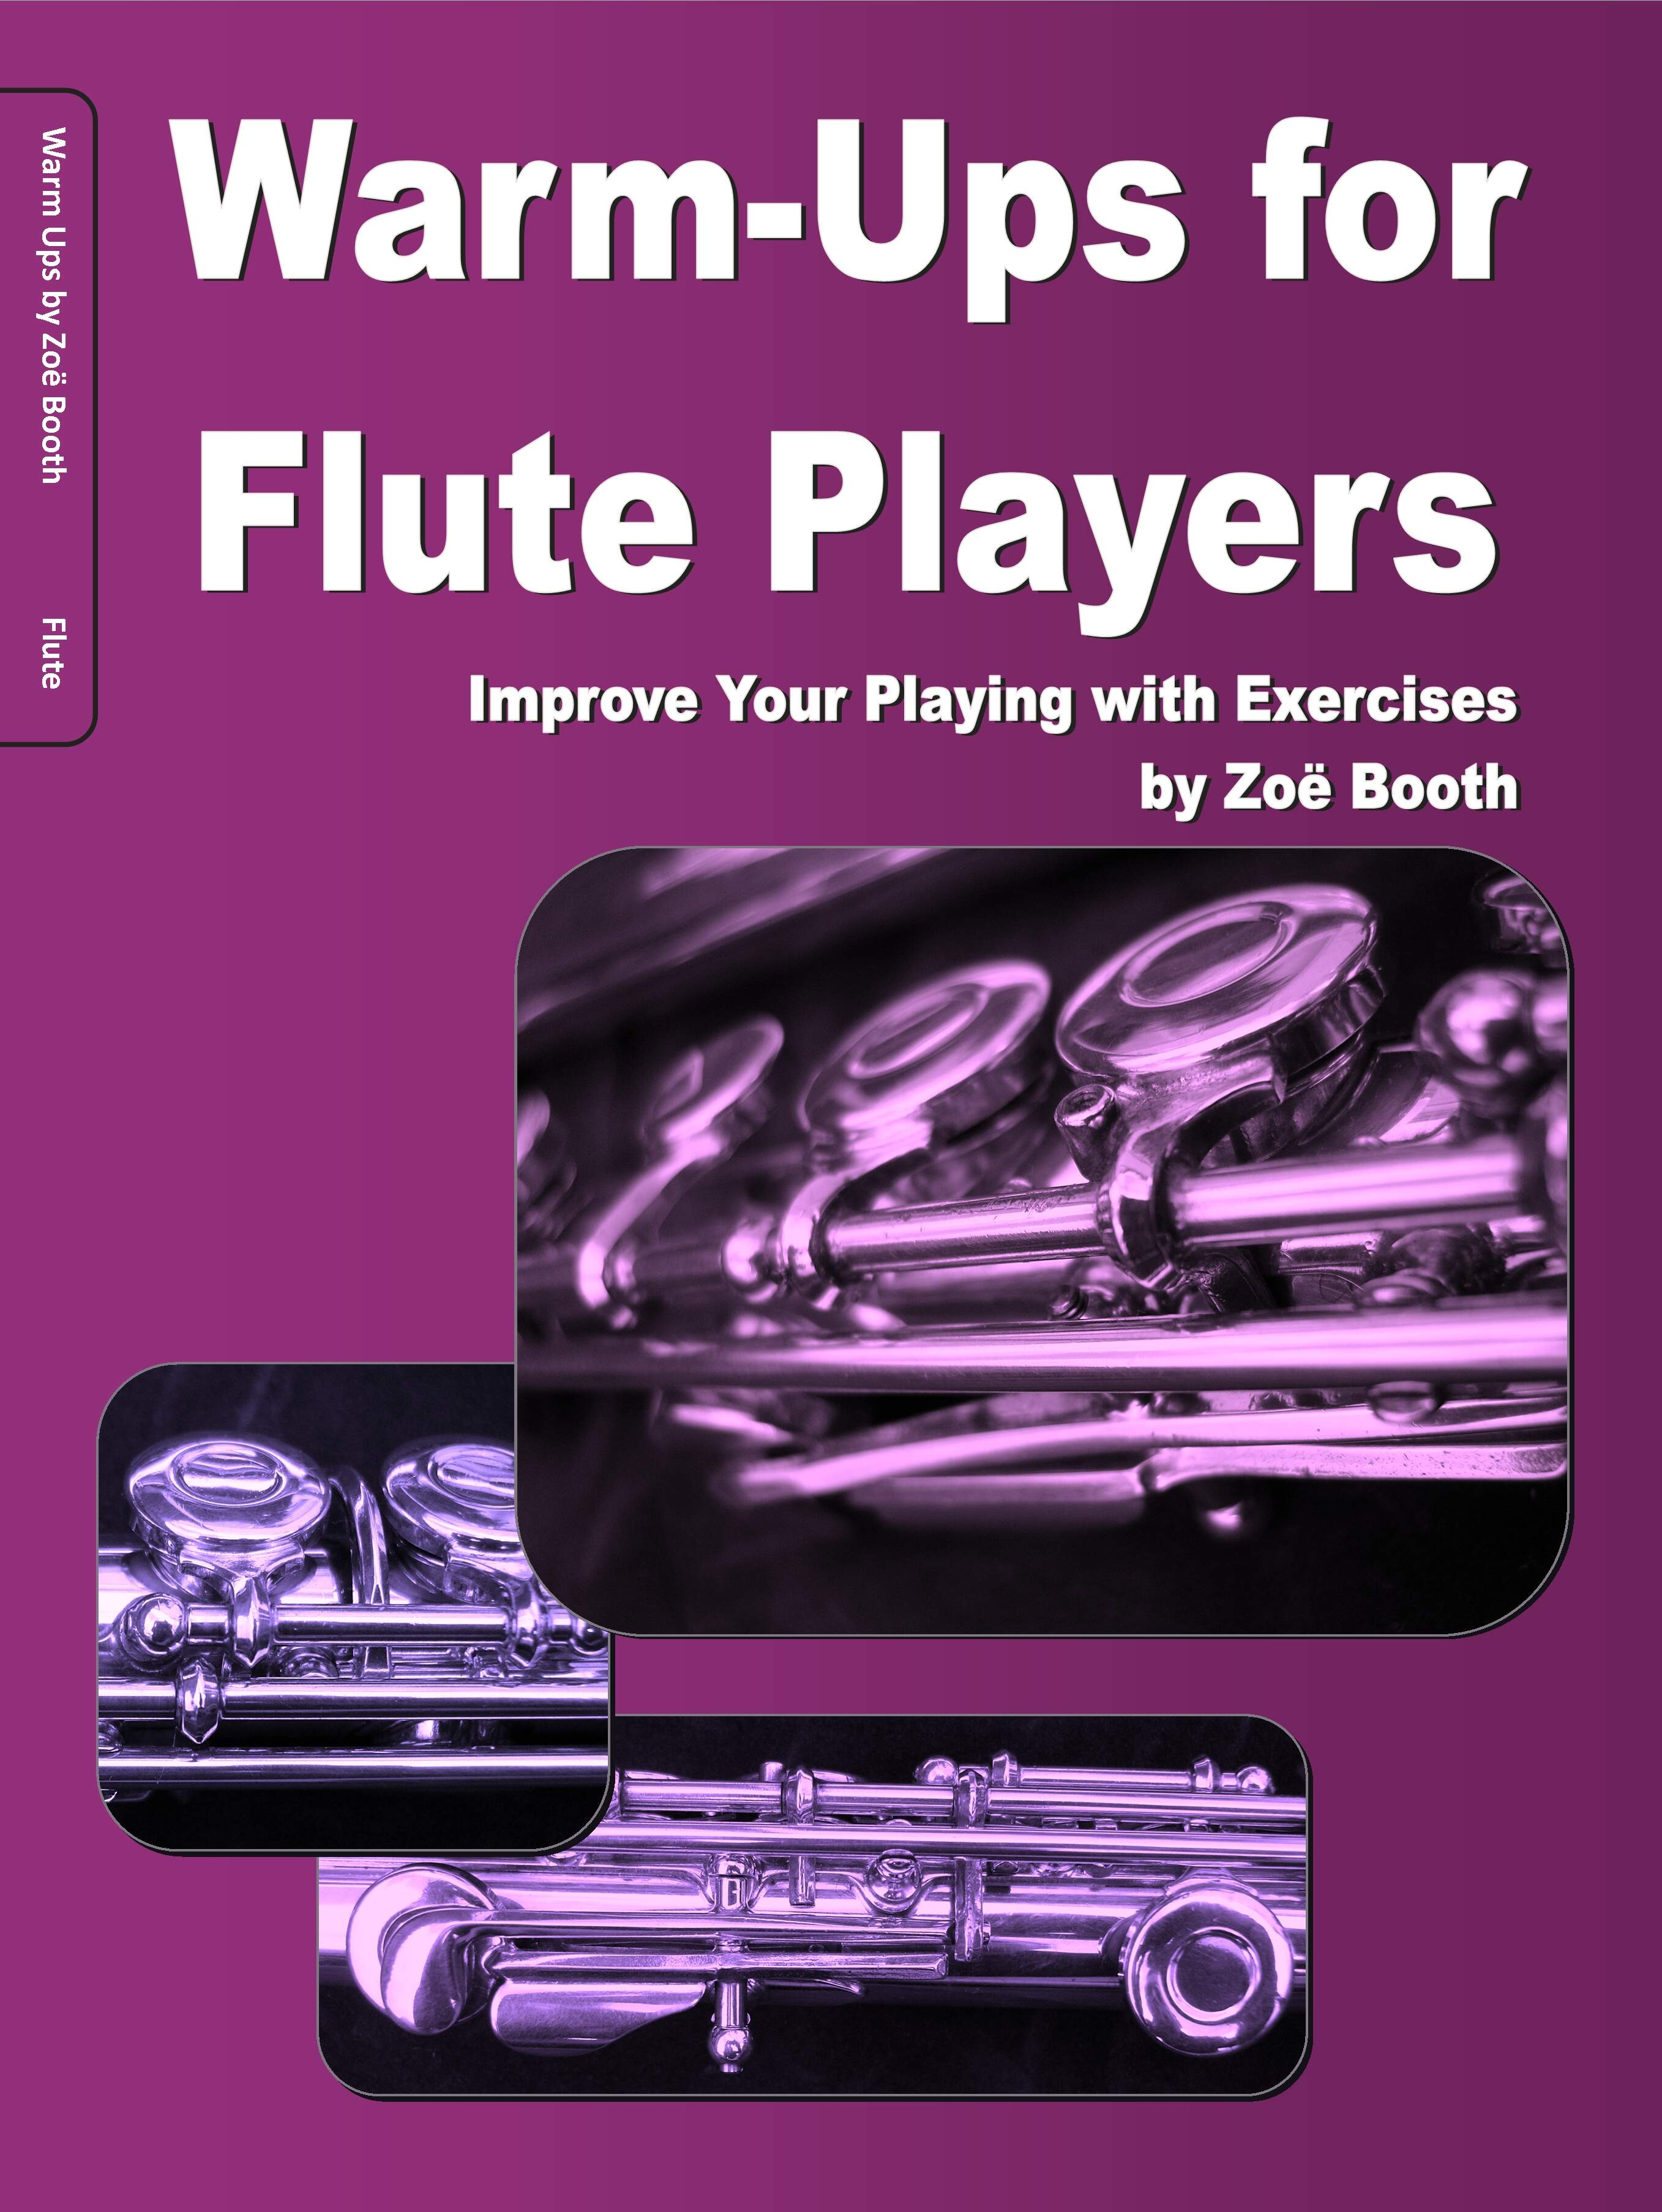 Warm-Ups for Flute Players -  Improve Your Playing with Exercises by Zoë Booth